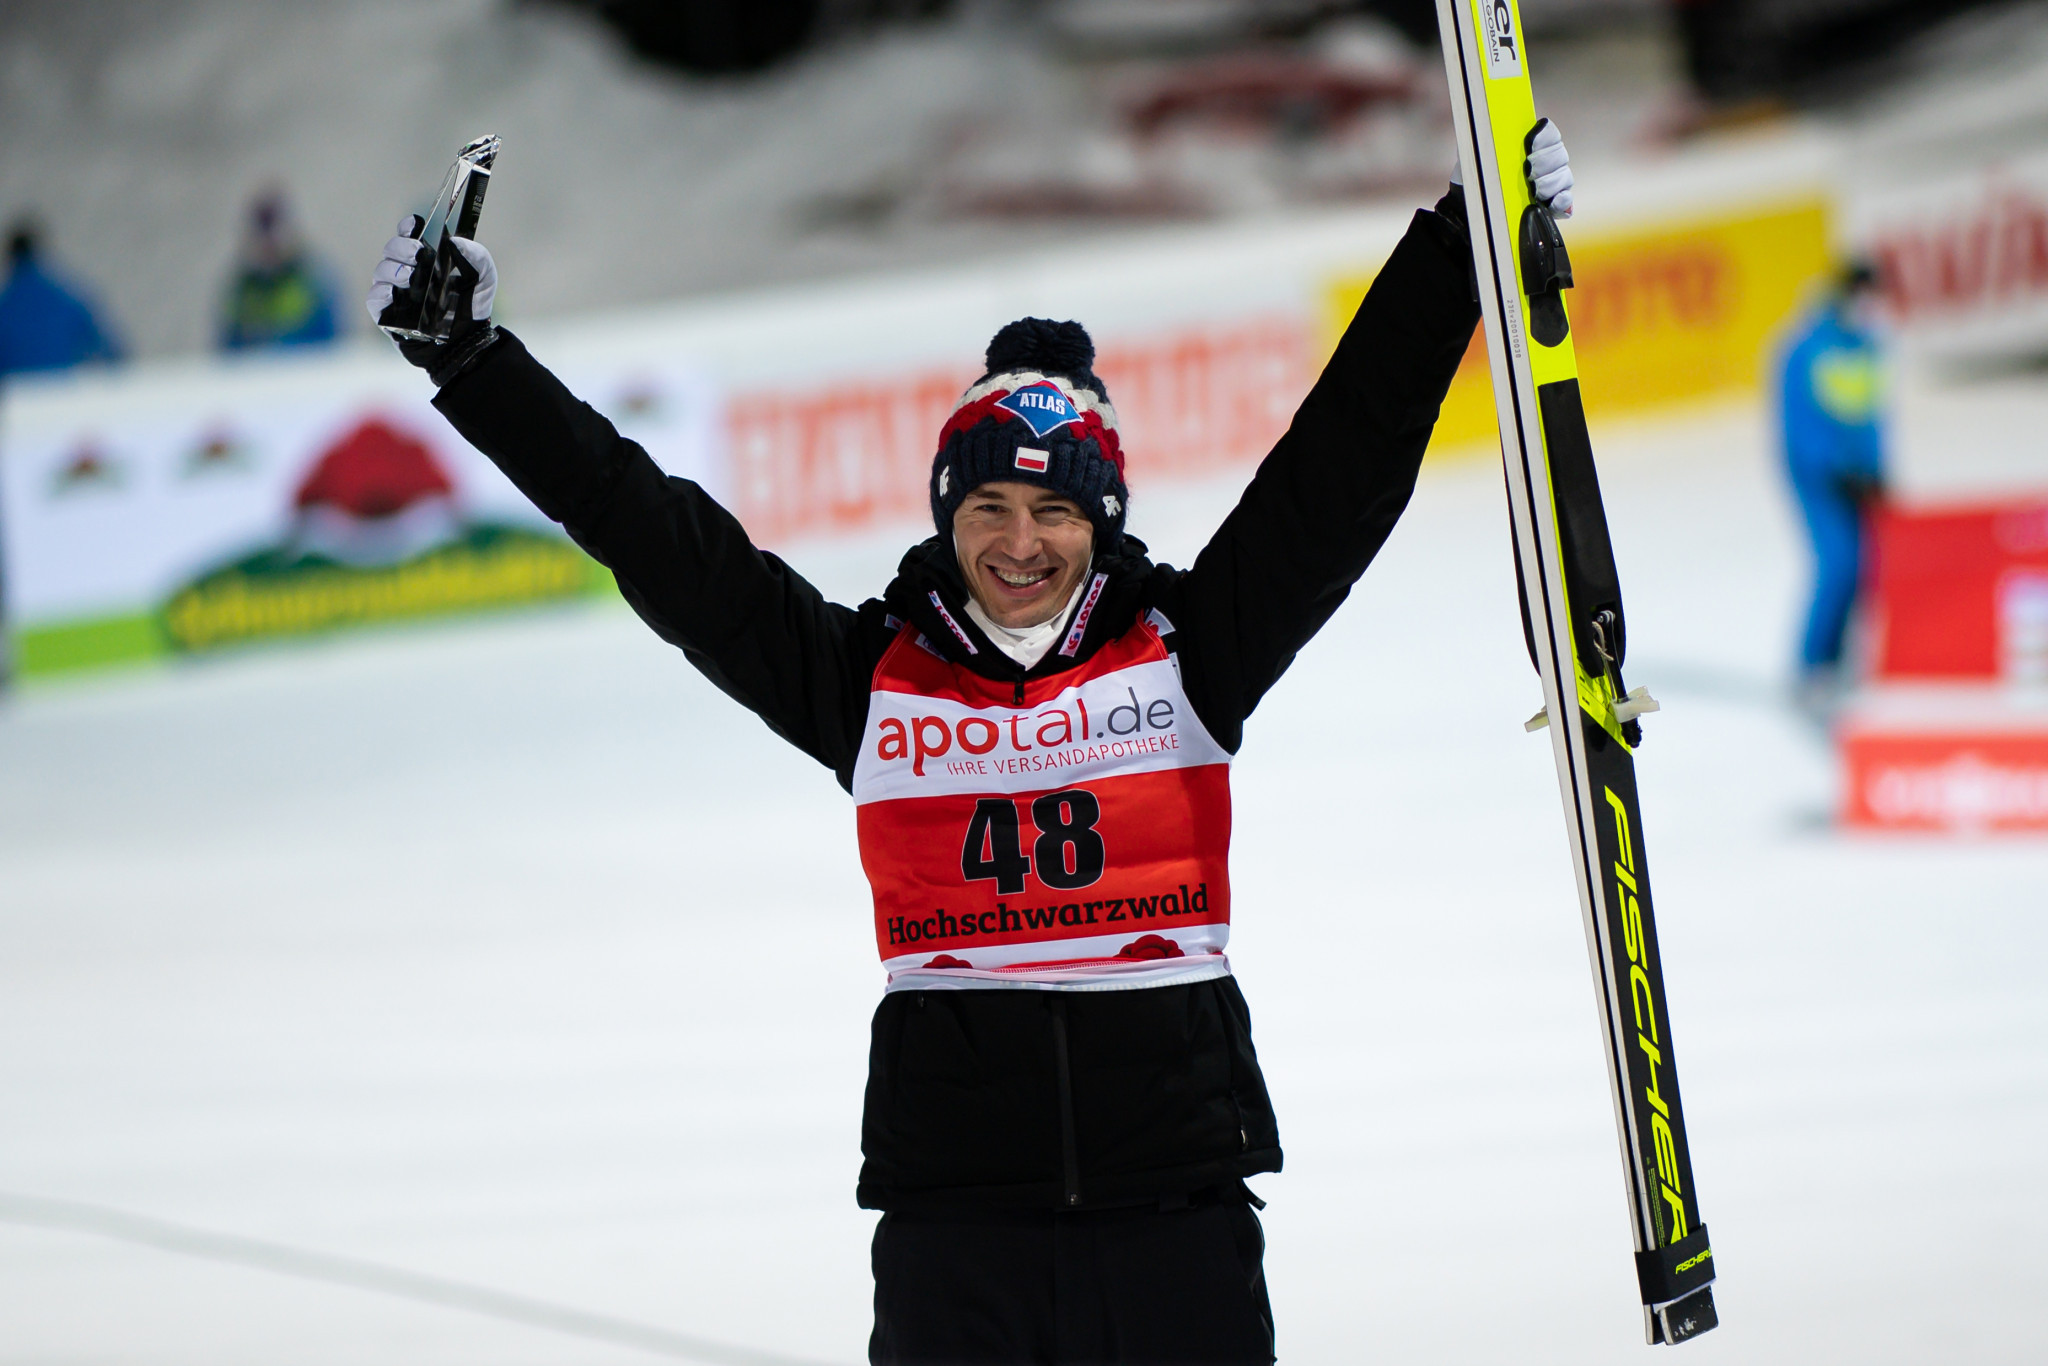 Stoch wins third event in a row at FIS Ski Jumping World Cup in Titisee-Neustadt